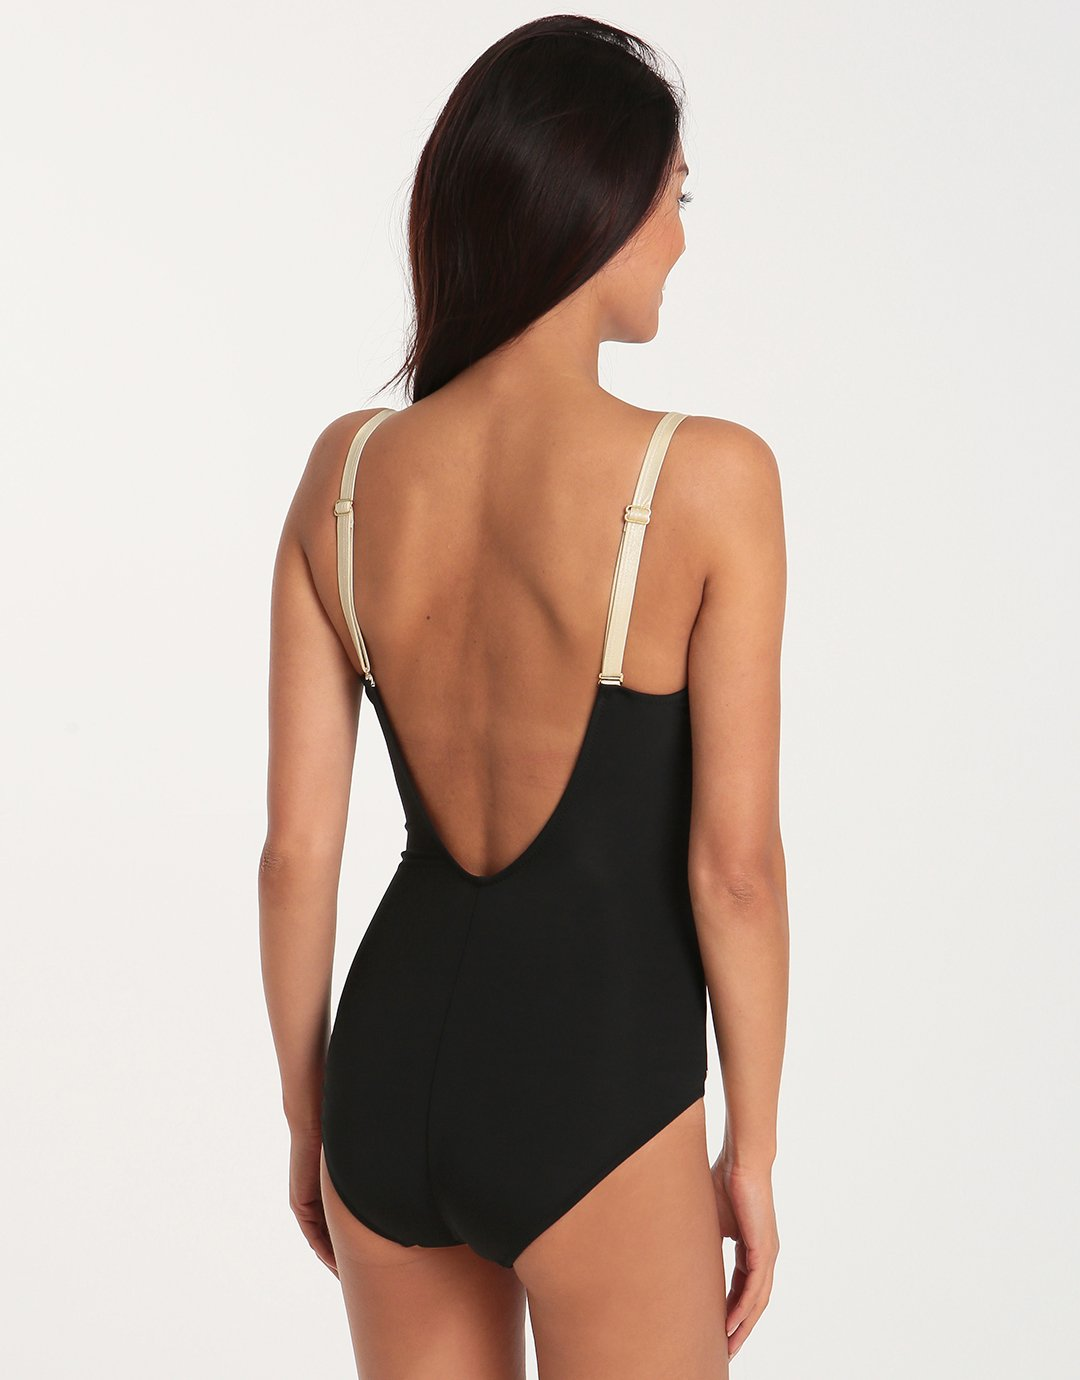 David Gleam Gold C Cup One Piece - Black